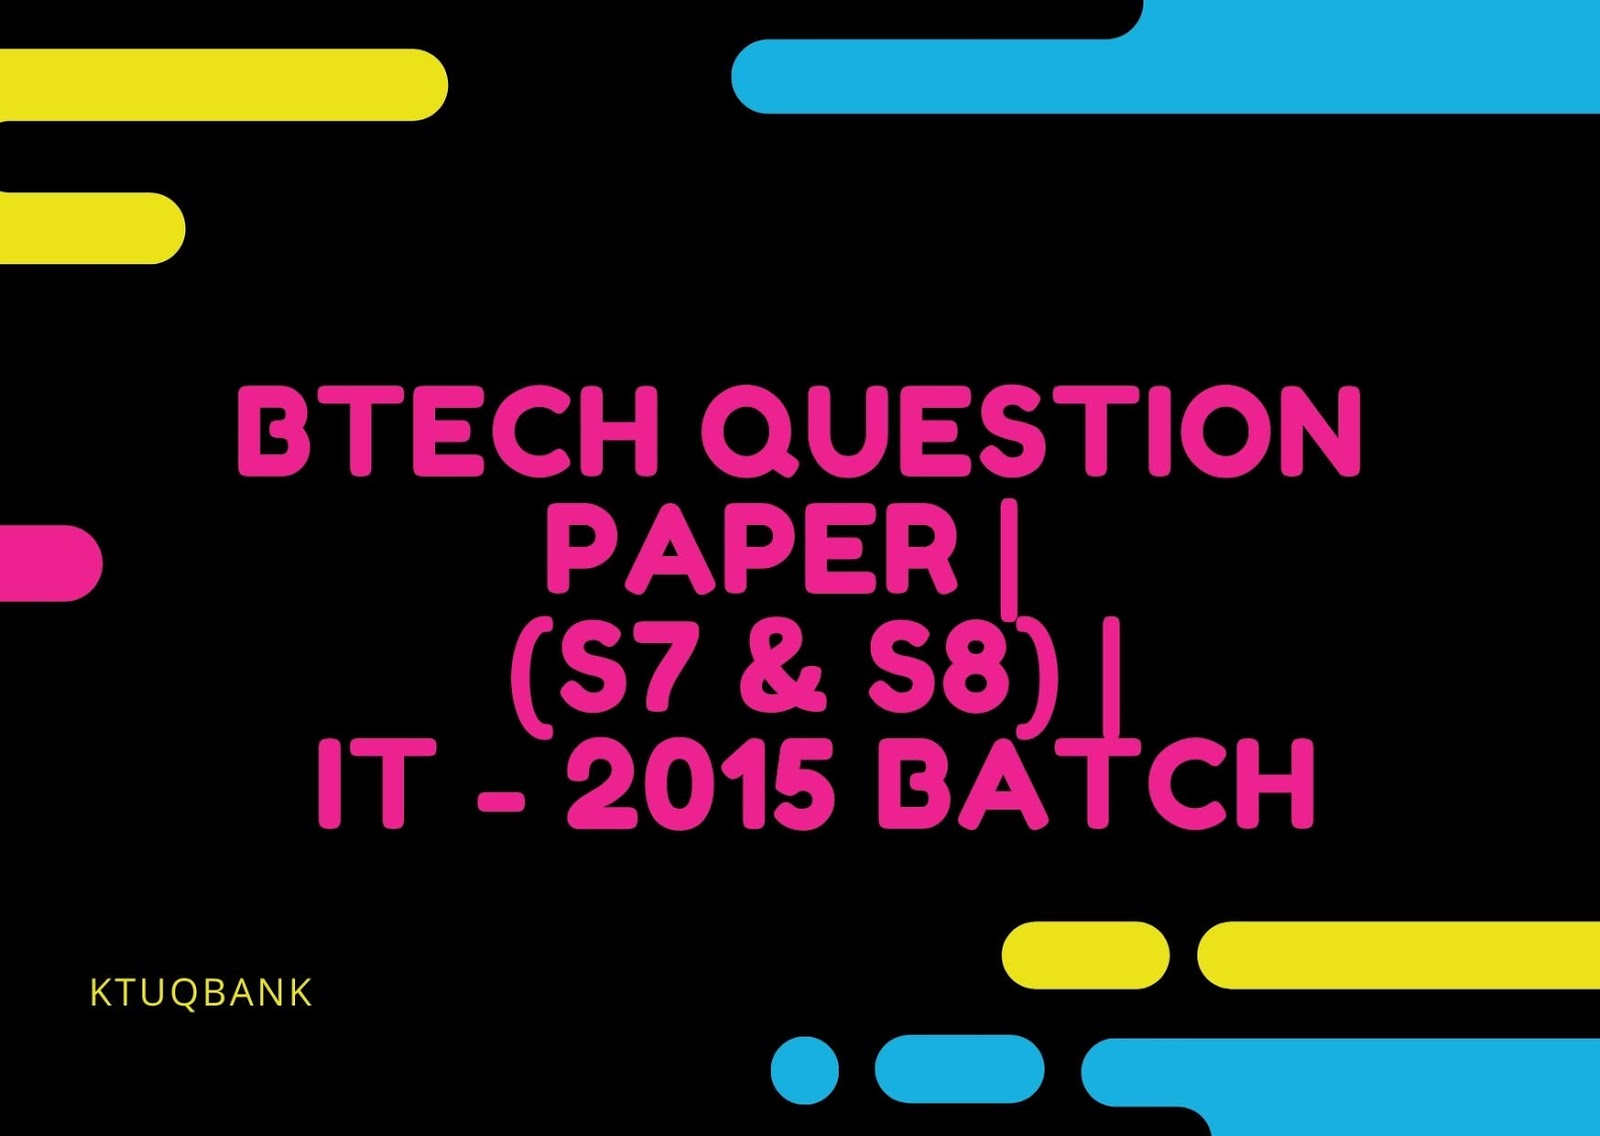 BTech Question Paper | 4th Year (S7 & S8) | Information Technology - 2015 Batch